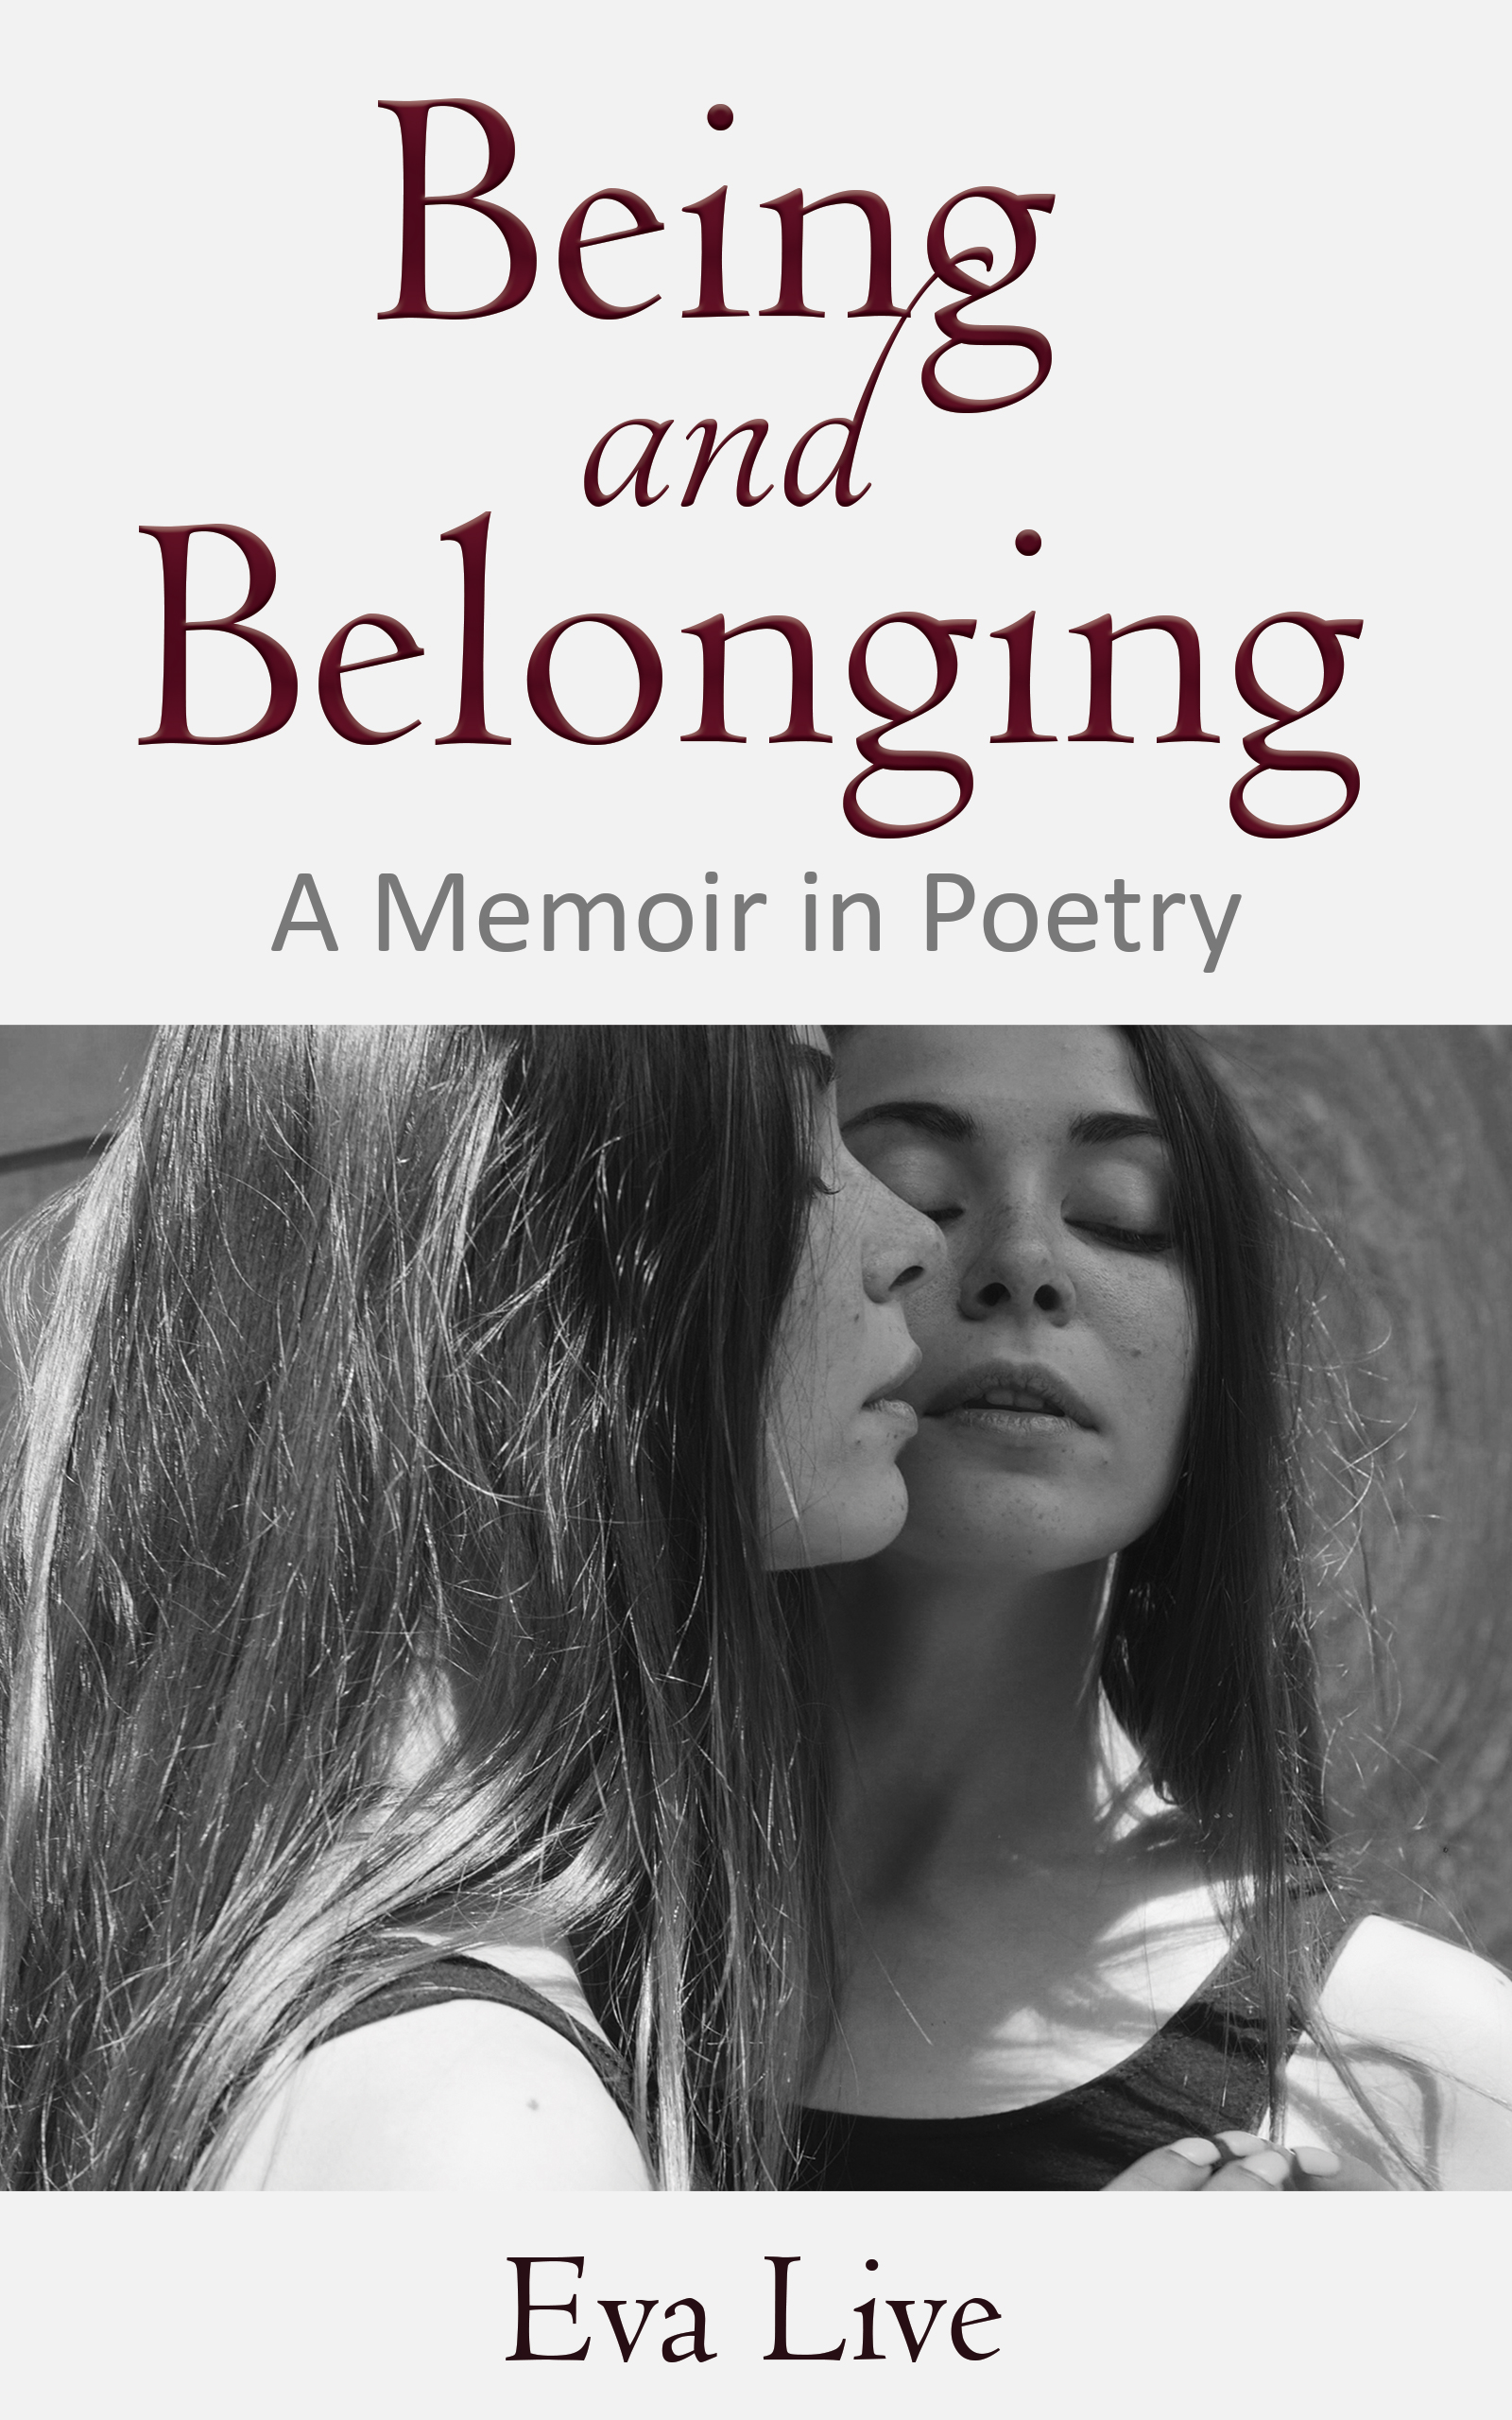 Being and Belonging: A Memoir in Poetry